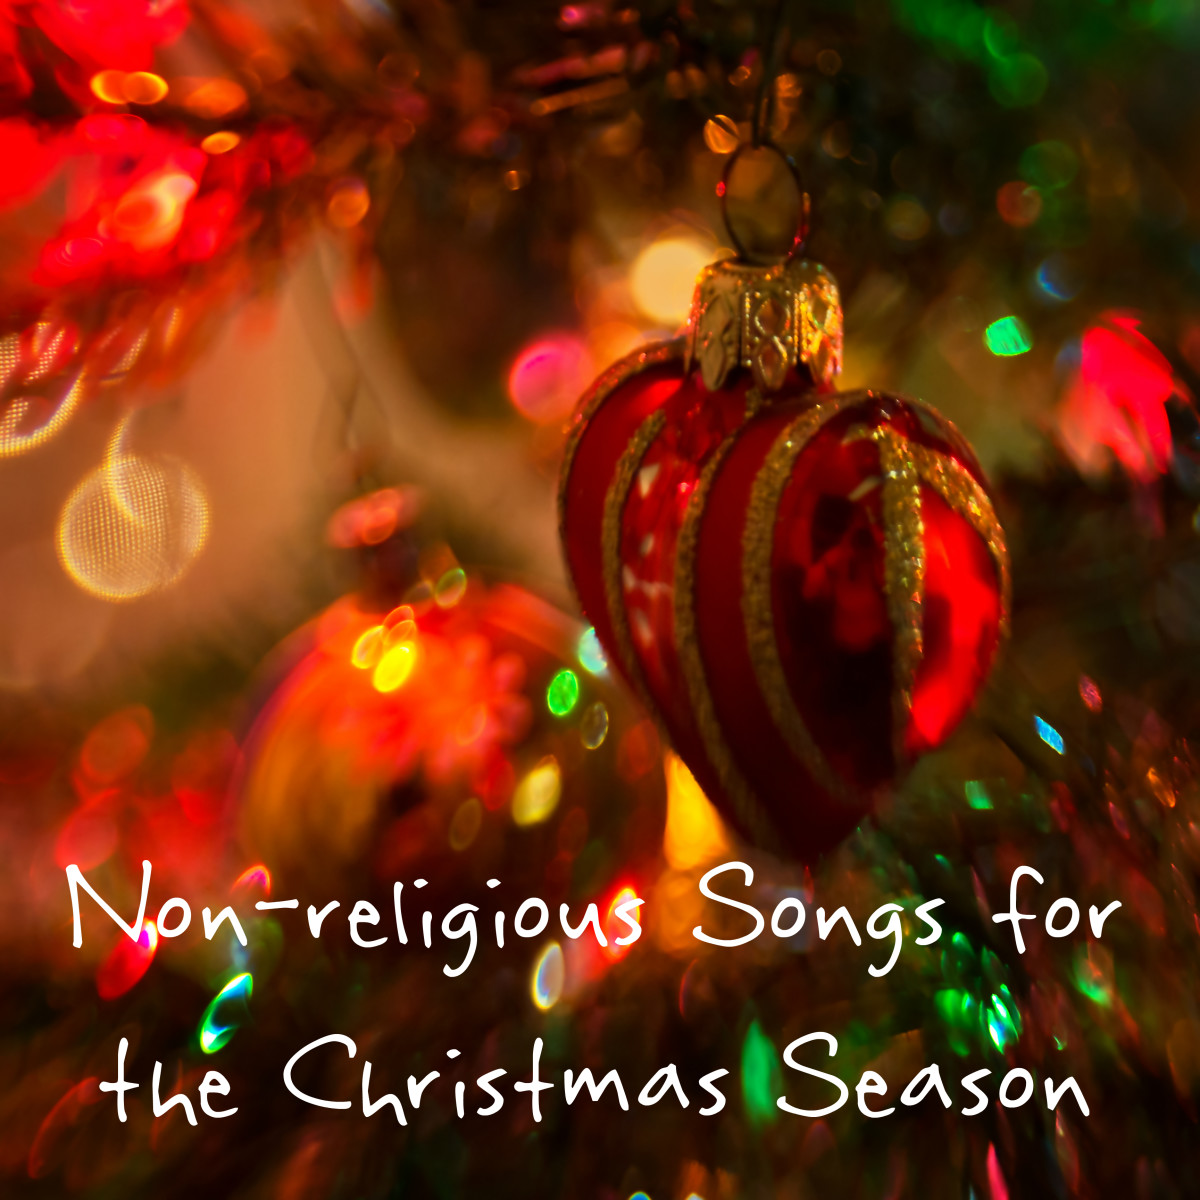 112 Non-Religious Christmas Songs for Your Holiday Playlist